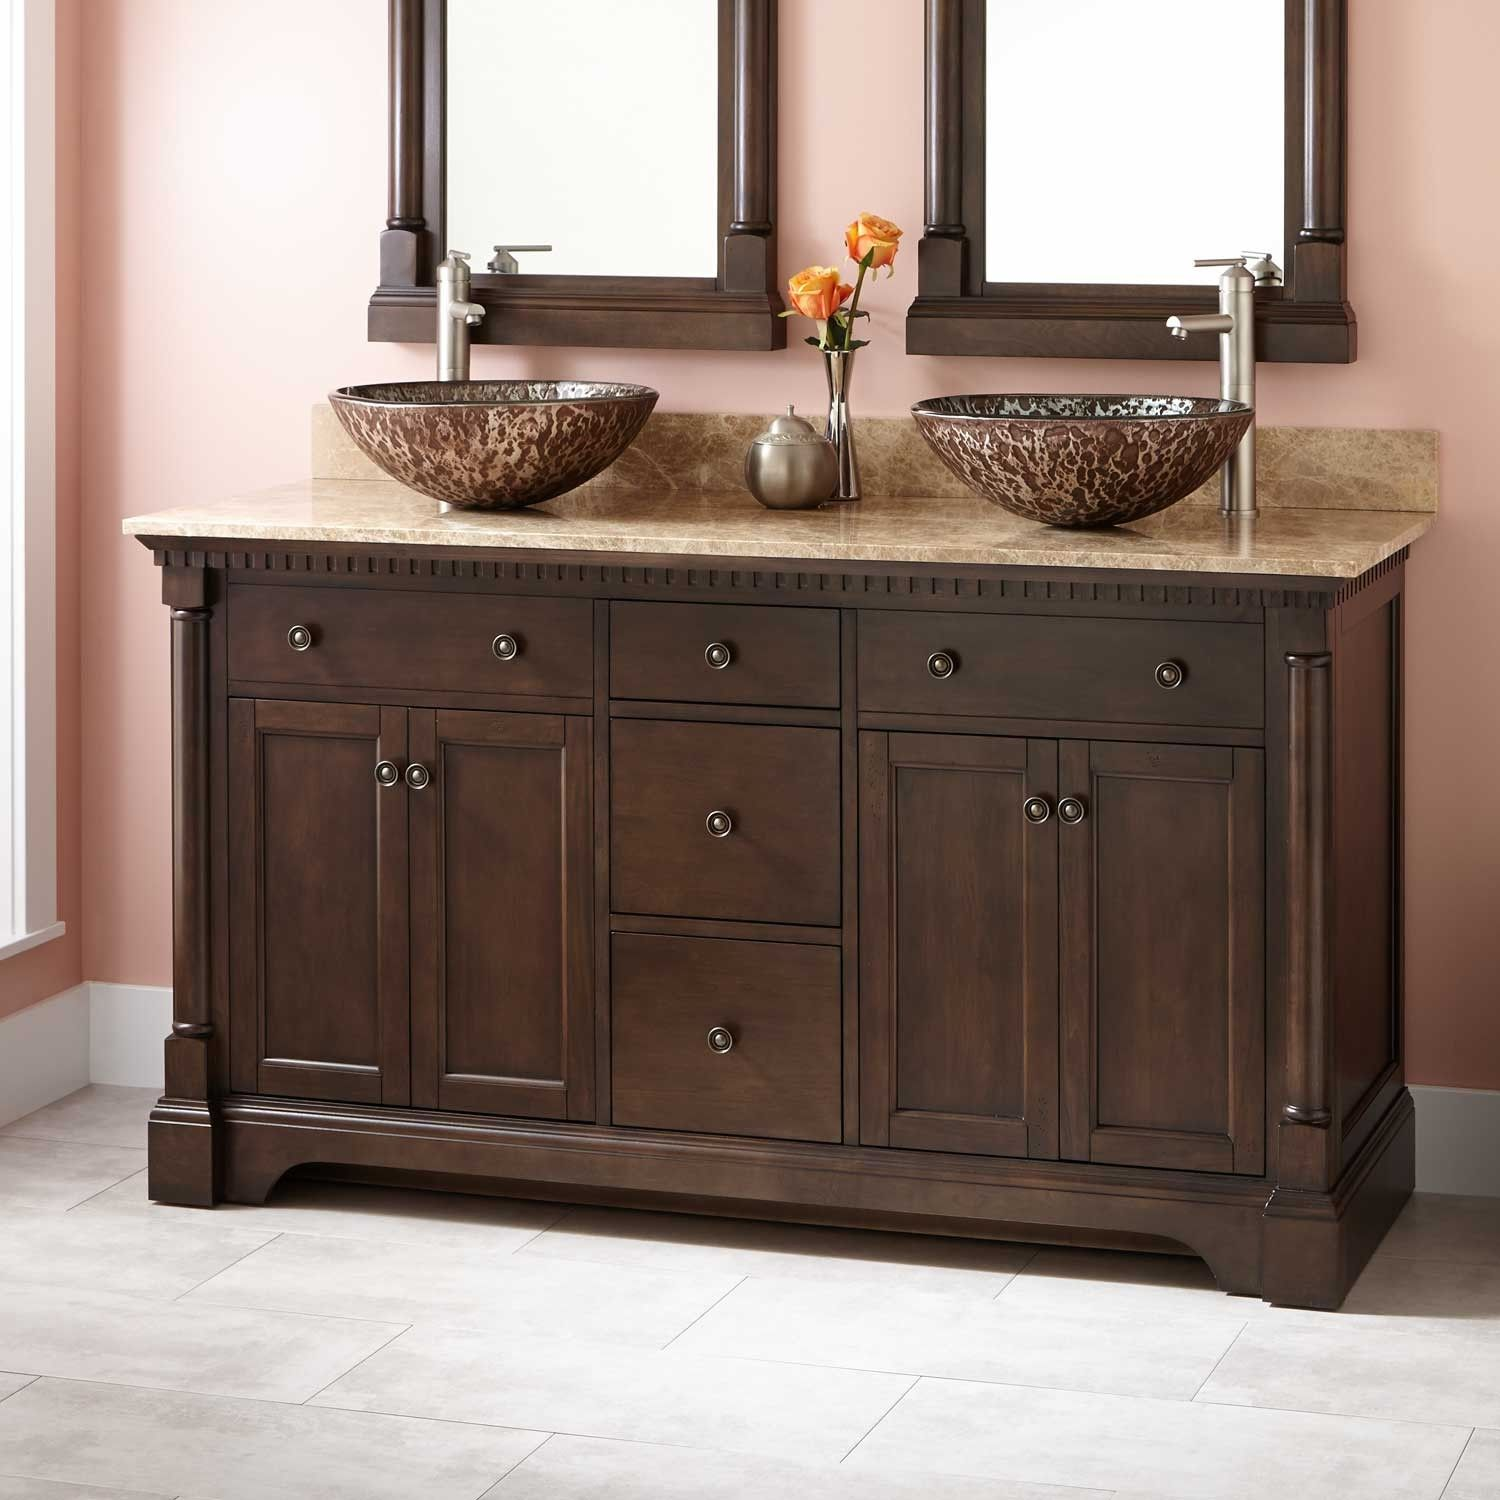 "Northampton 72 Double Bathroom Vanity Set 60"" claudia double vessel sink vanity - antique coffee"